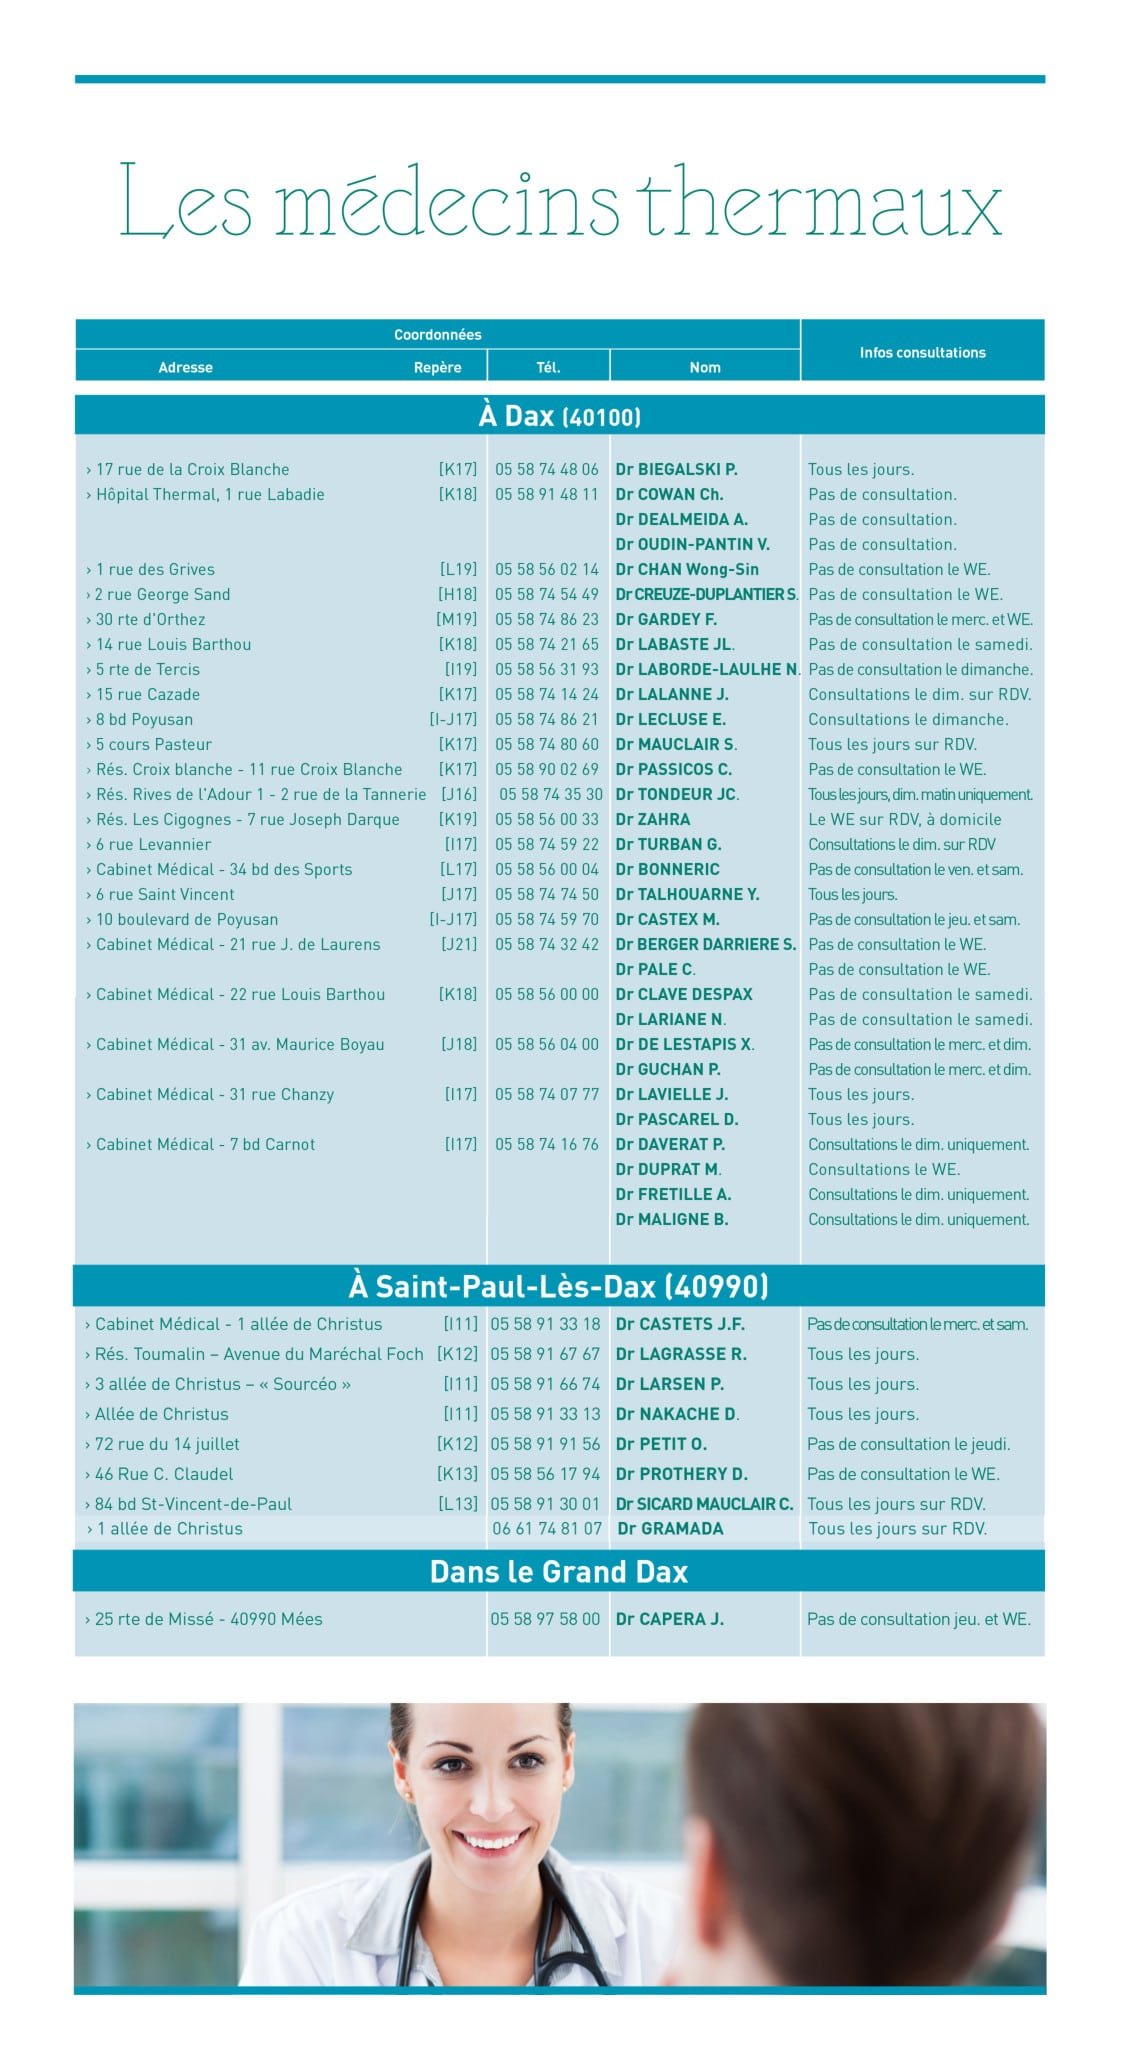 Listing médecins thermaux